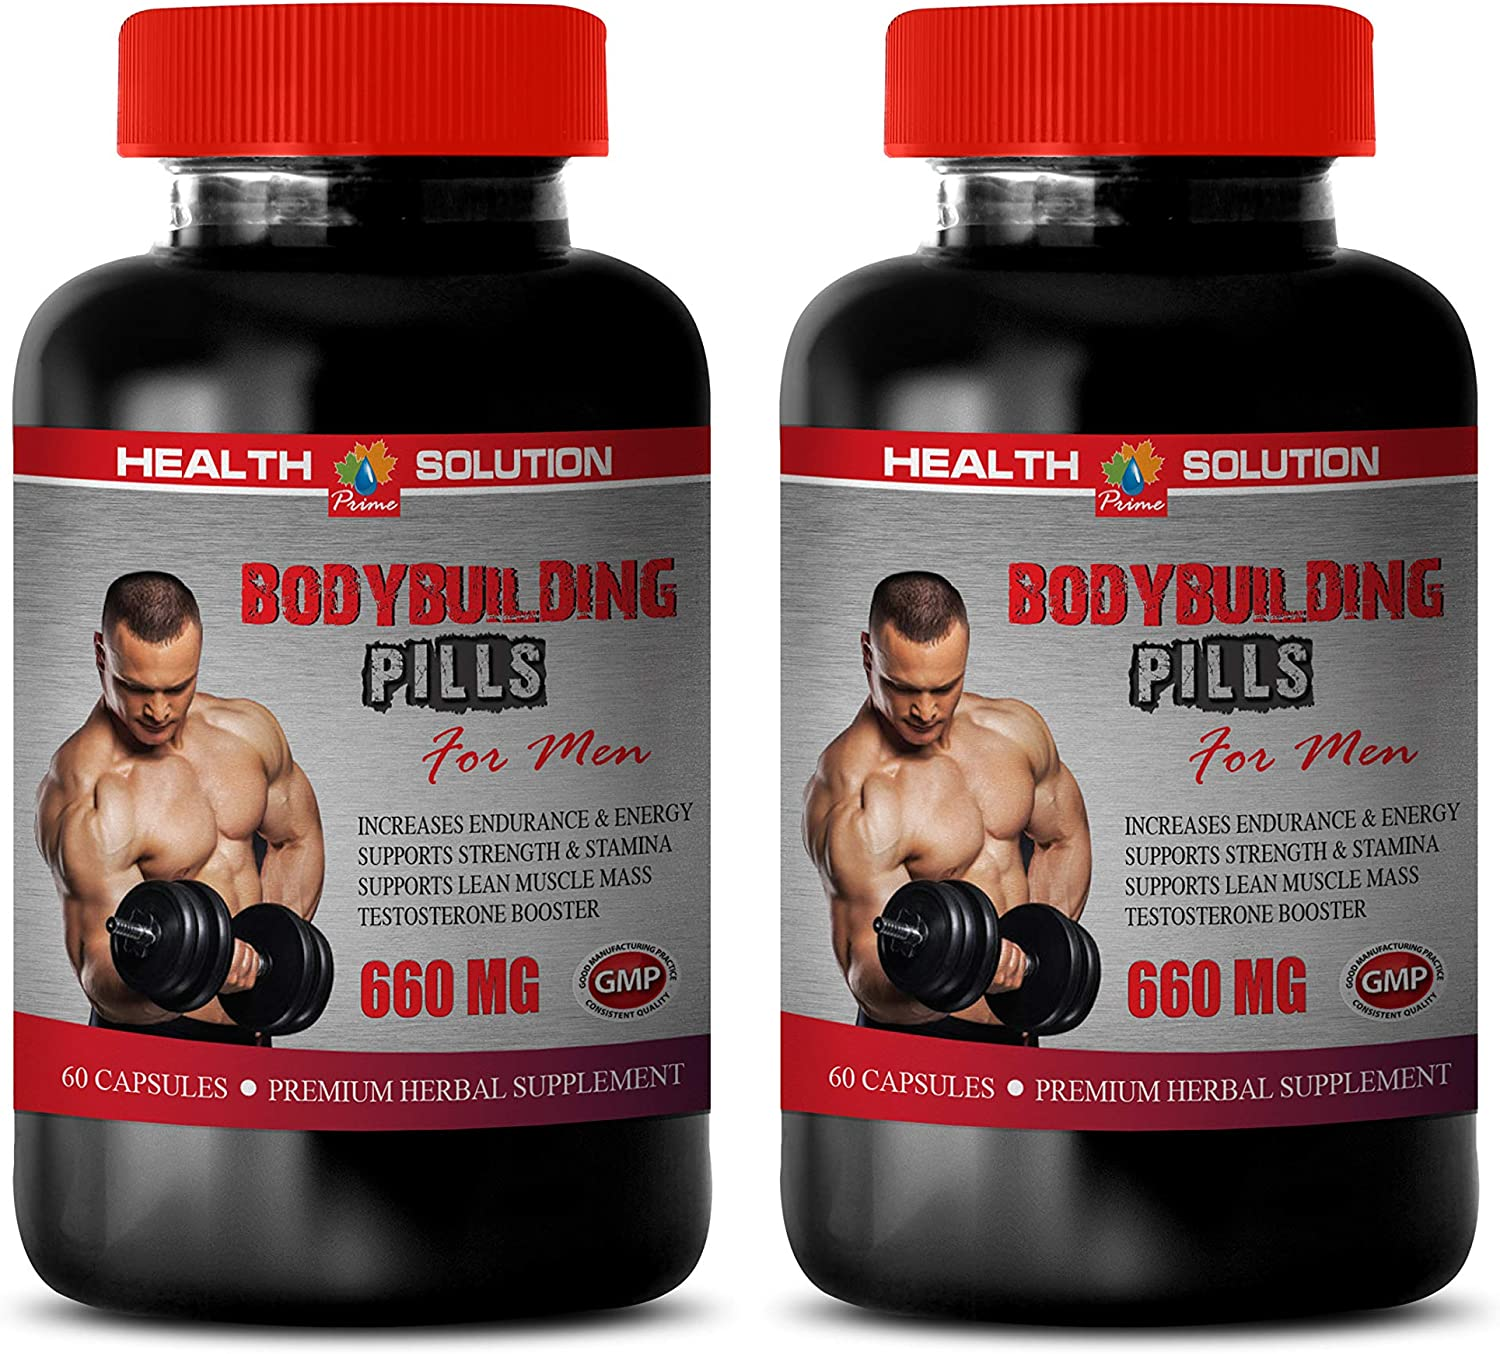 Energy Booster for Men - Max 81% OFF Supplements Bodybuild Max 73% OFF Muscle Building